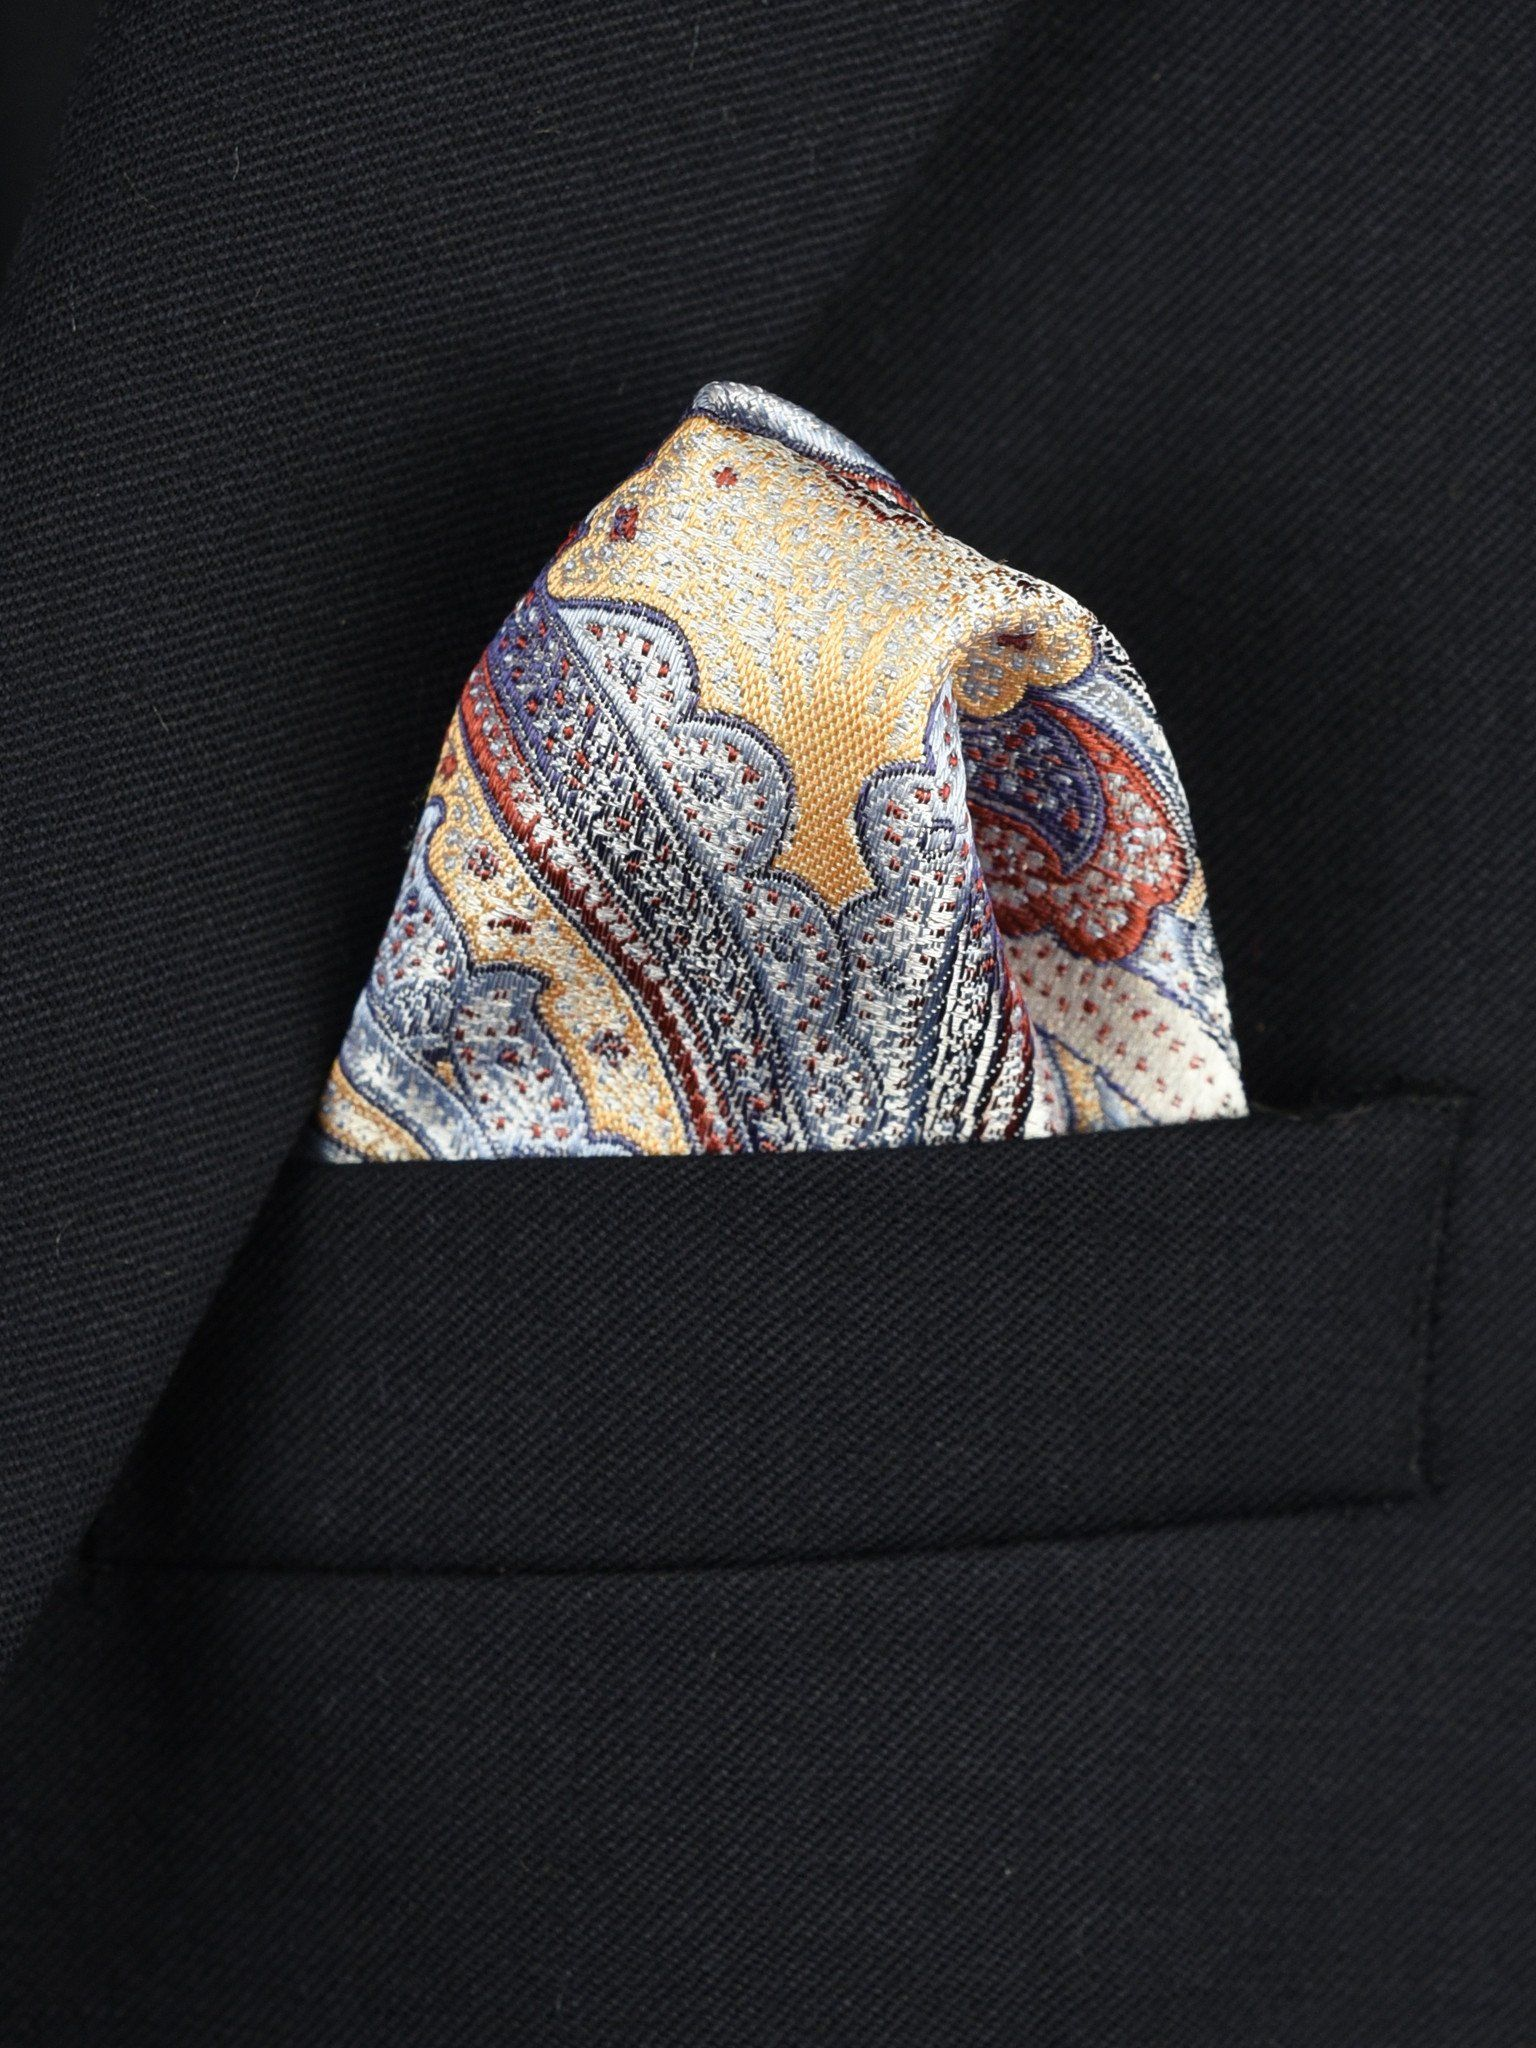 Boy's Pocket Square 22379 Peach/Blue Paisley